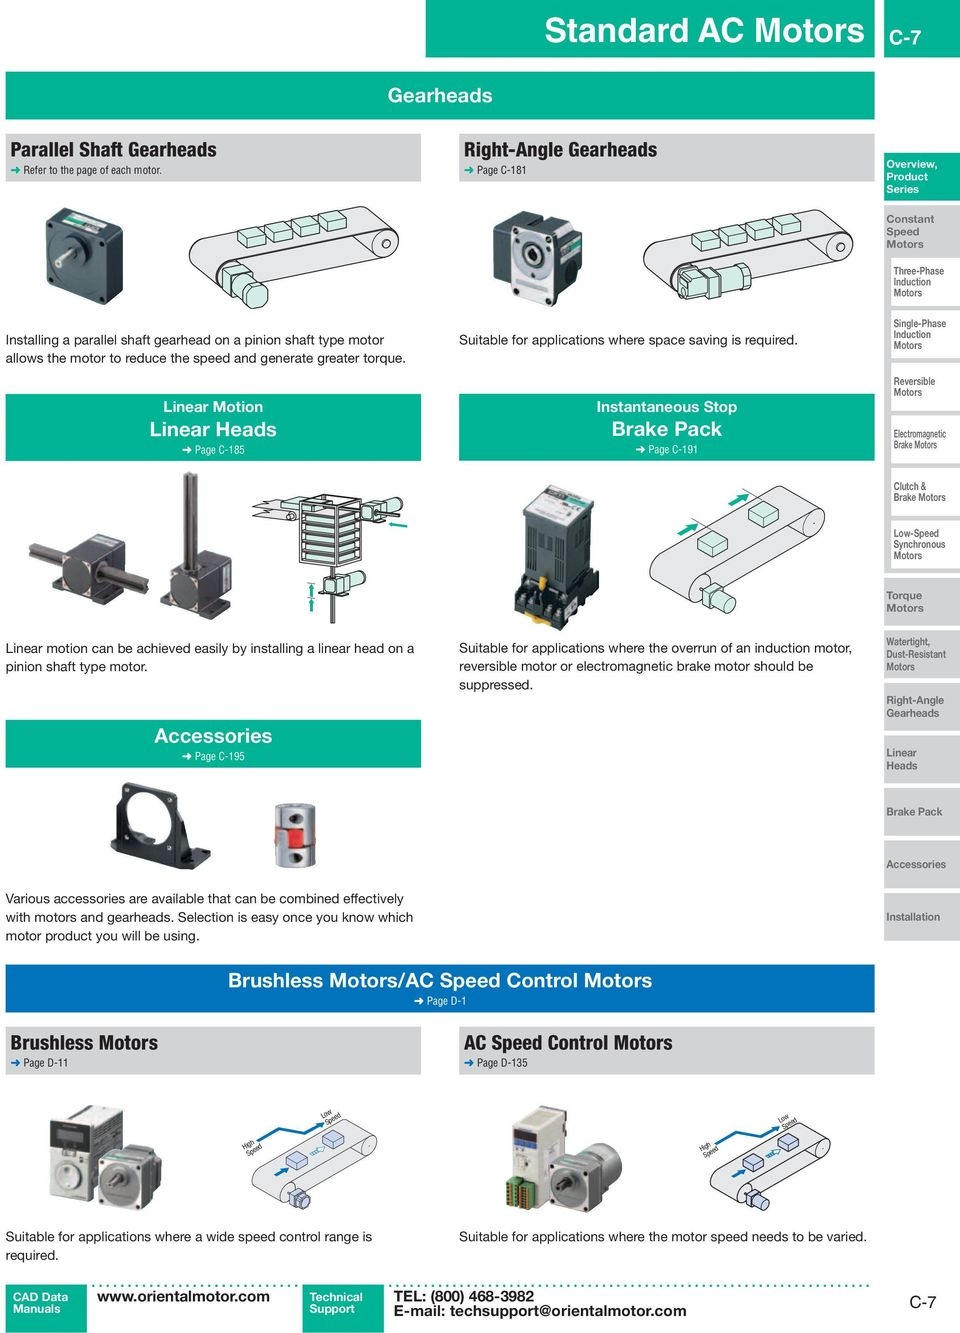 Linear Motion Linear Heads Page C-185 Suitable for applications where space saving is required.